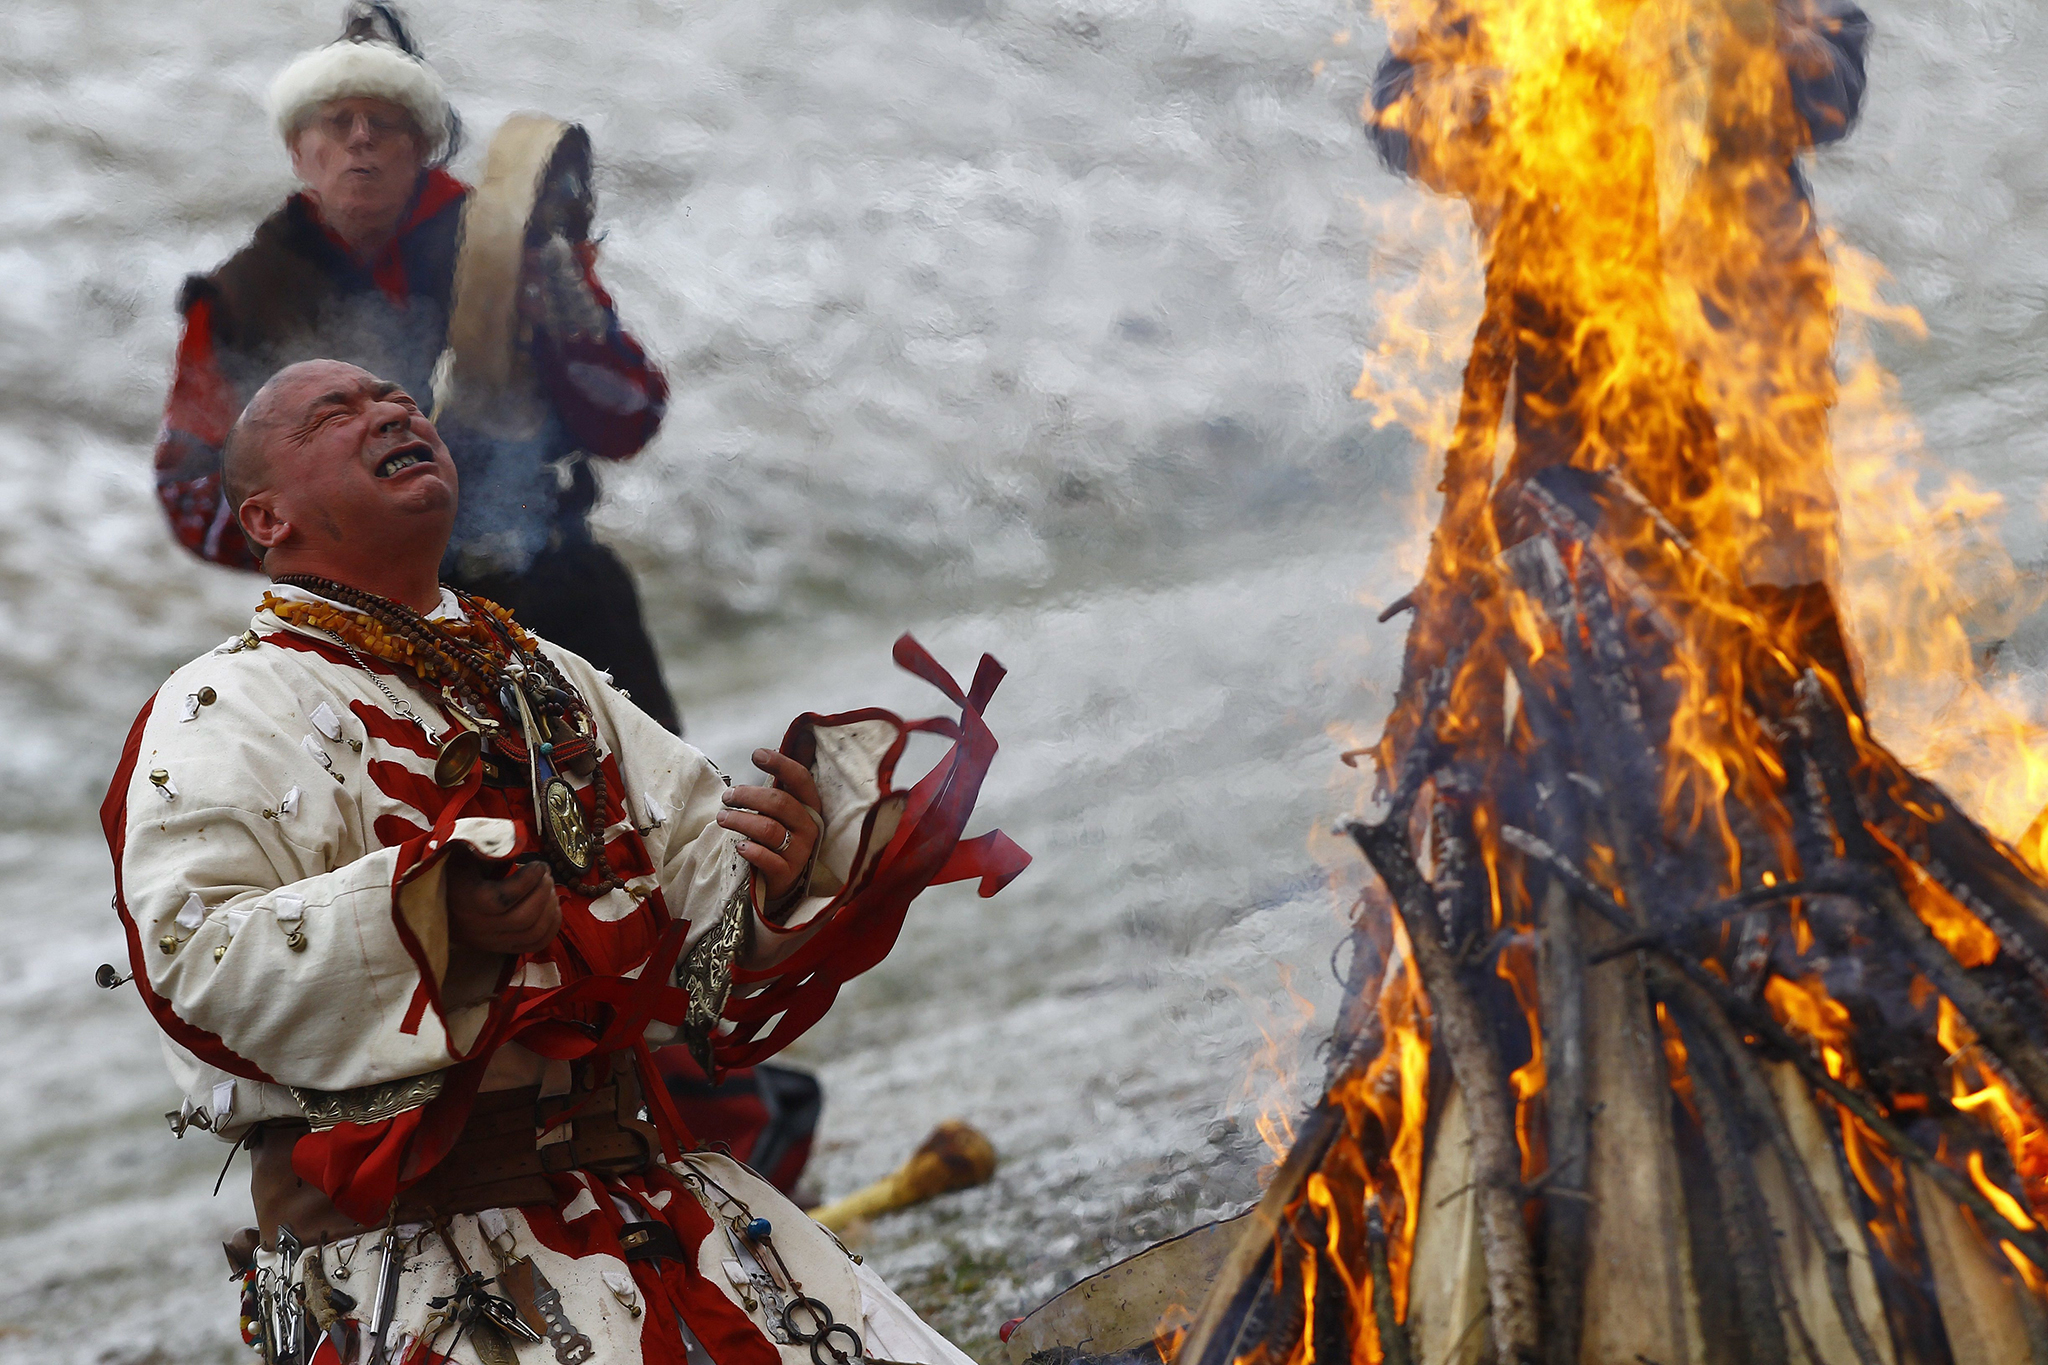 ungarian Artist Miklos Zoltan Baji performs a shamanic ritual around a bonfire during winter solstice celebrations in Bekescsaba, 200 kms southeast of Budapest, Hungary, Wednesday, Dec 21, 2016, on the shortest day of the year. (Peter Lehoczky/MTI via AP)